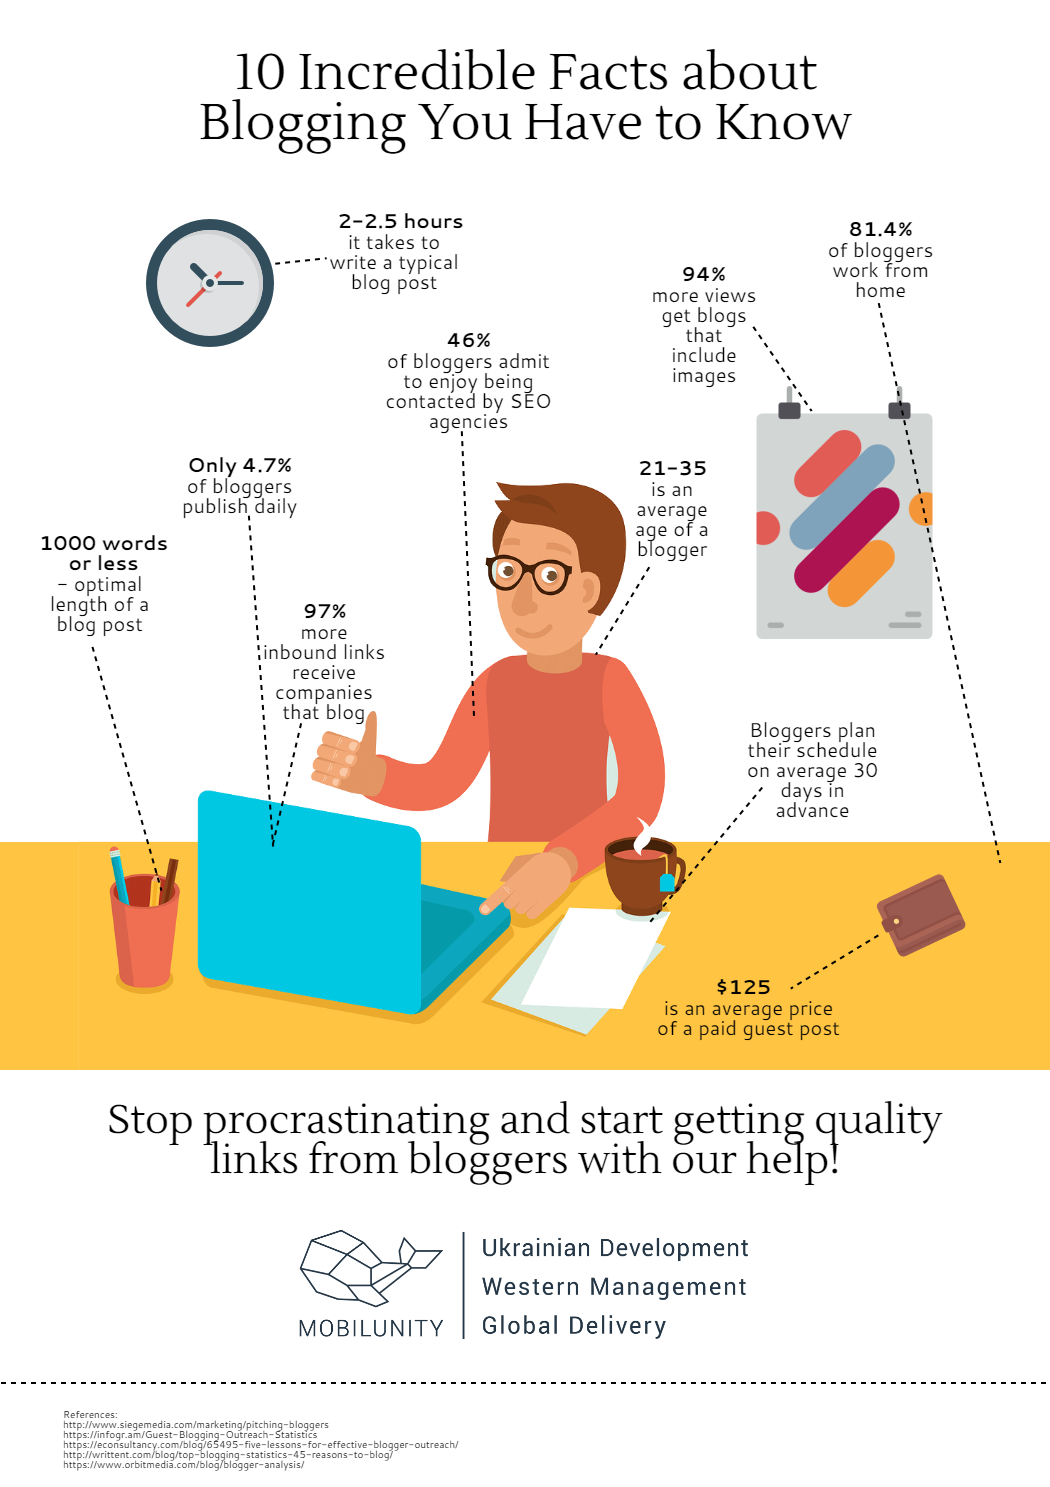 Incredible Facts about Blogging